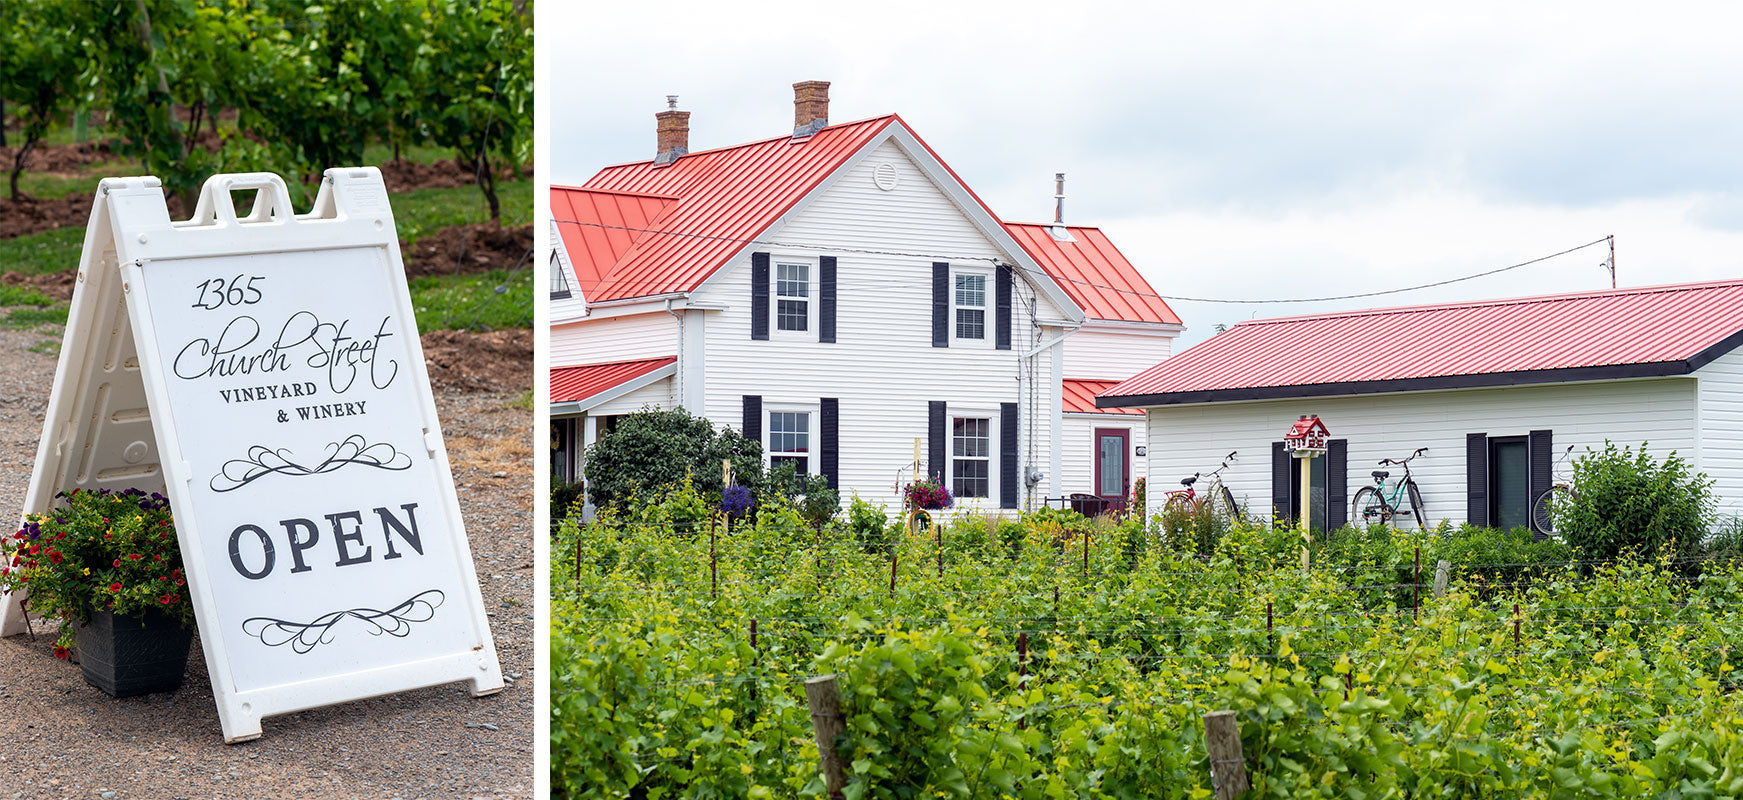 Image of open sign and back view of 1365 Church Street Vineyard